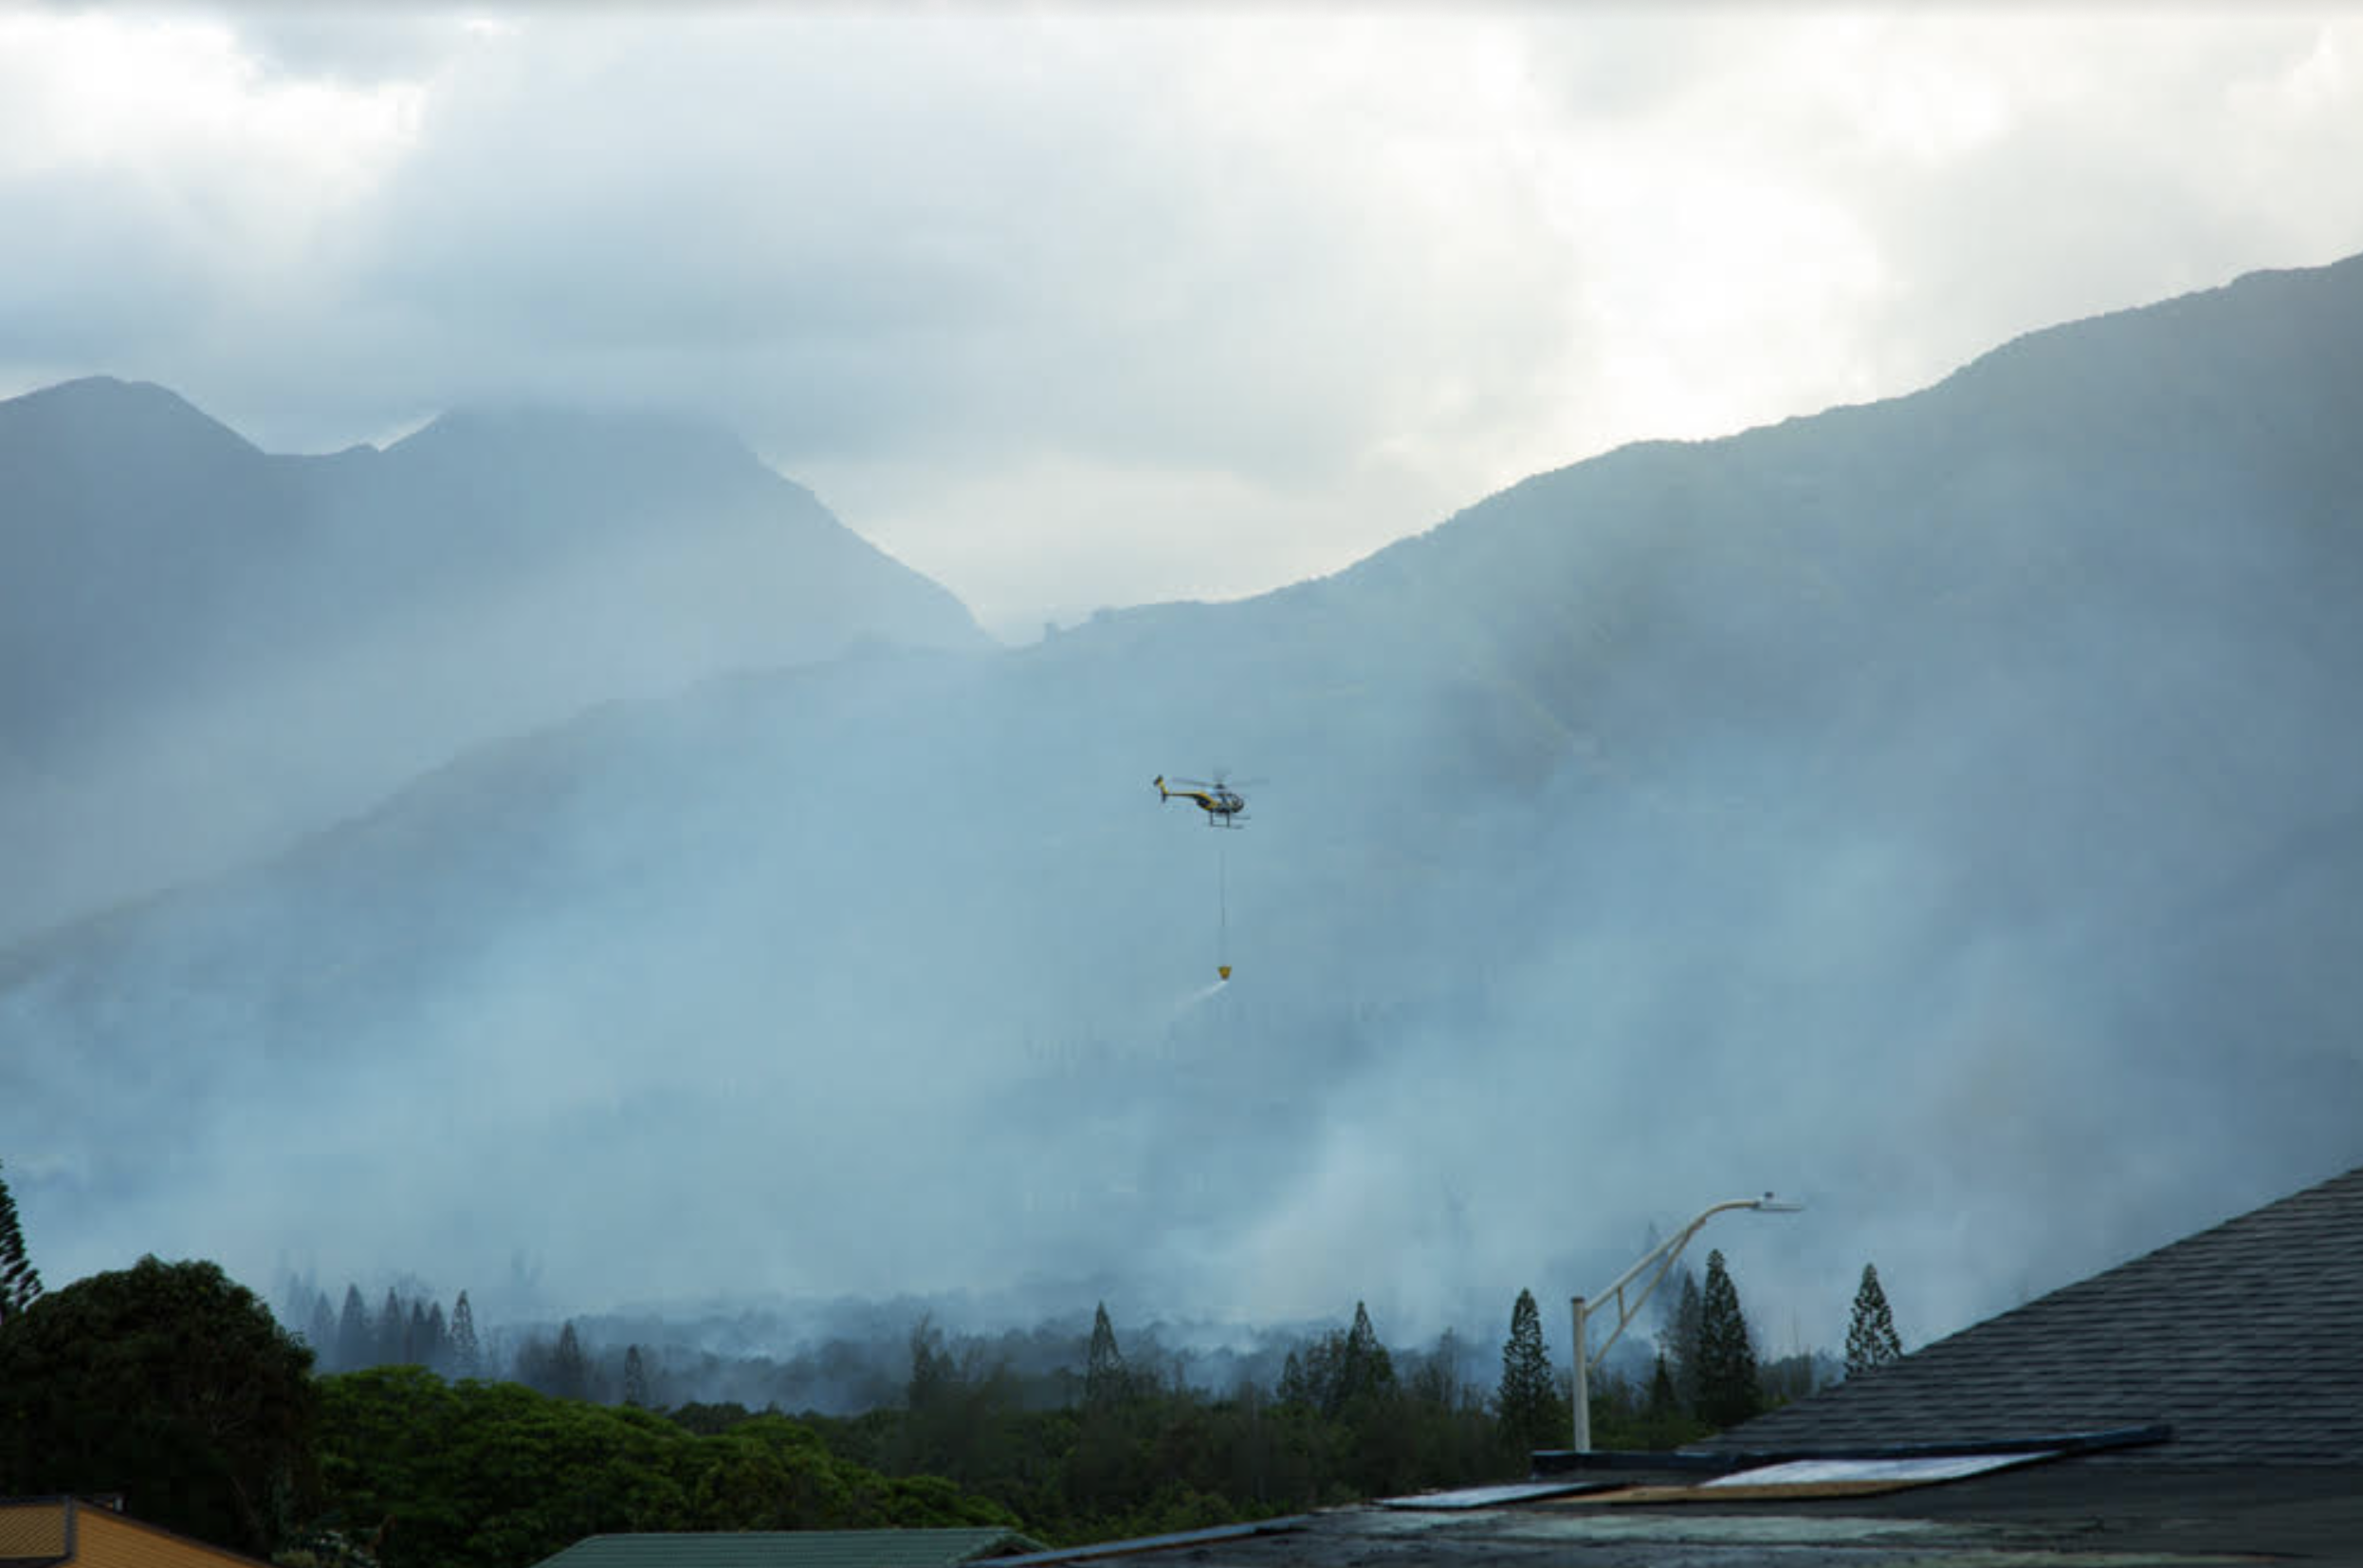 Updates: Waihe'e Brush Fire Burns 7 Acres, 100% Contained